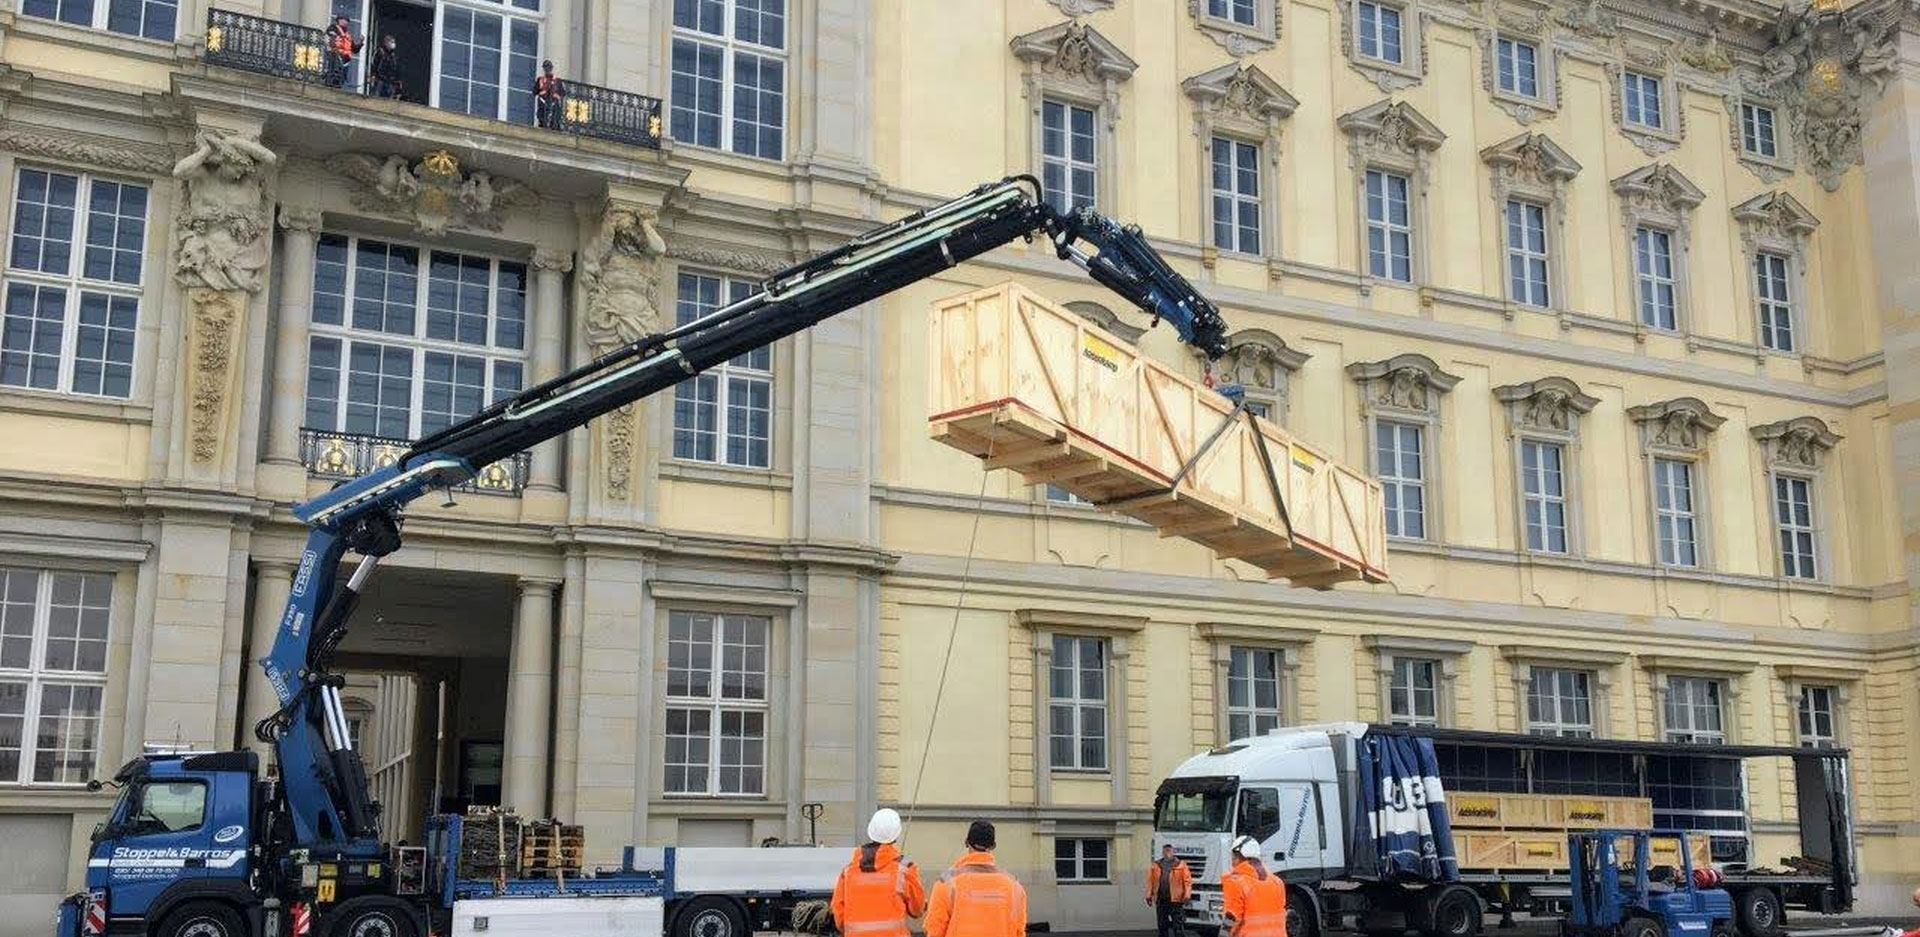 The totem pole being brought into the Humboldt Forum via a balcony.